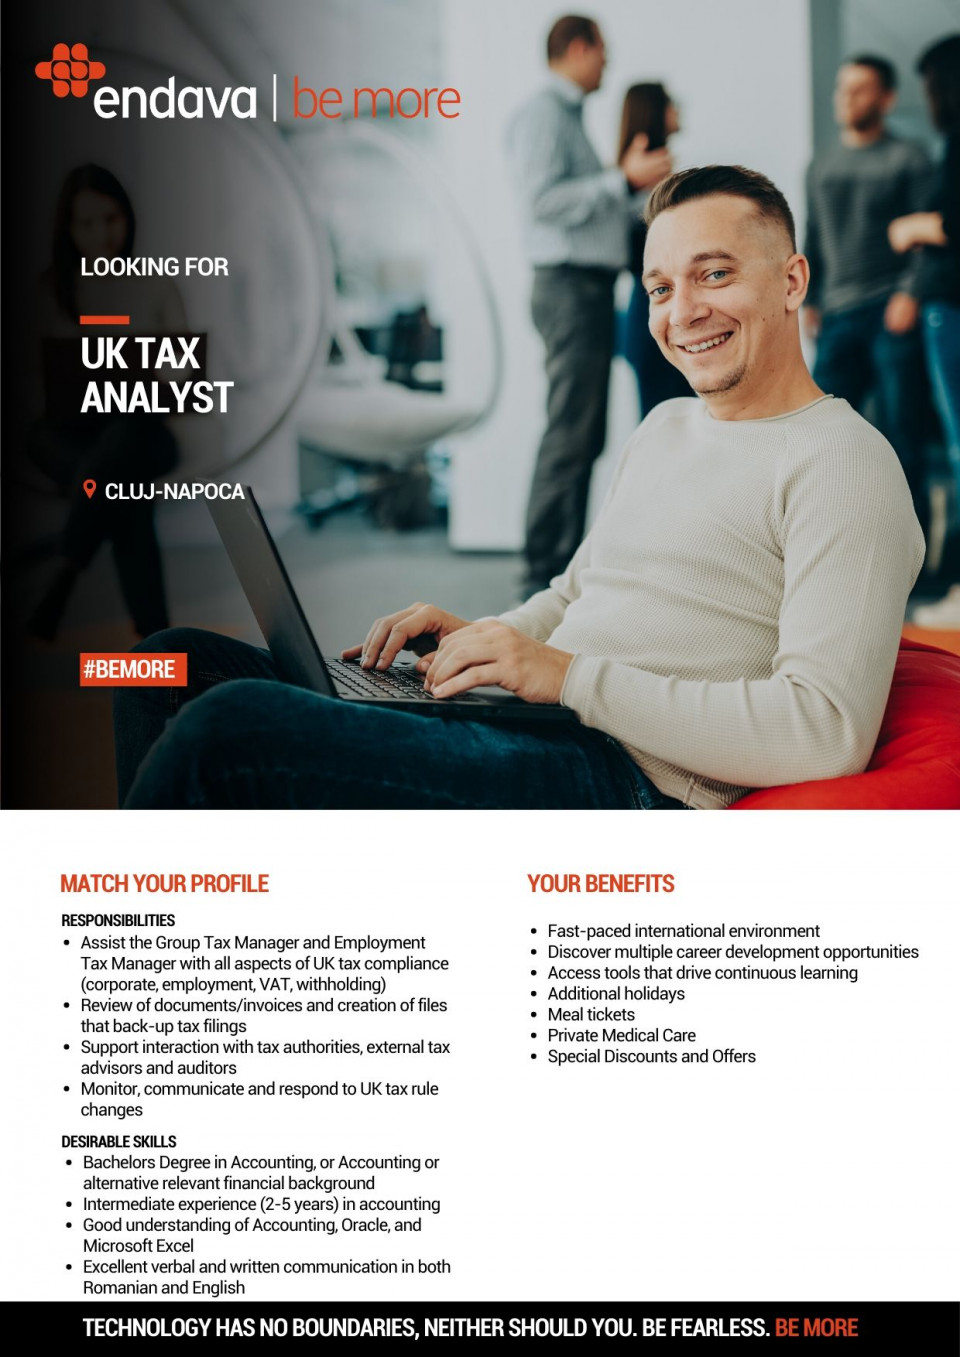 Bachelors Degree in Accounting, or Accounting or alternative relevant financial background